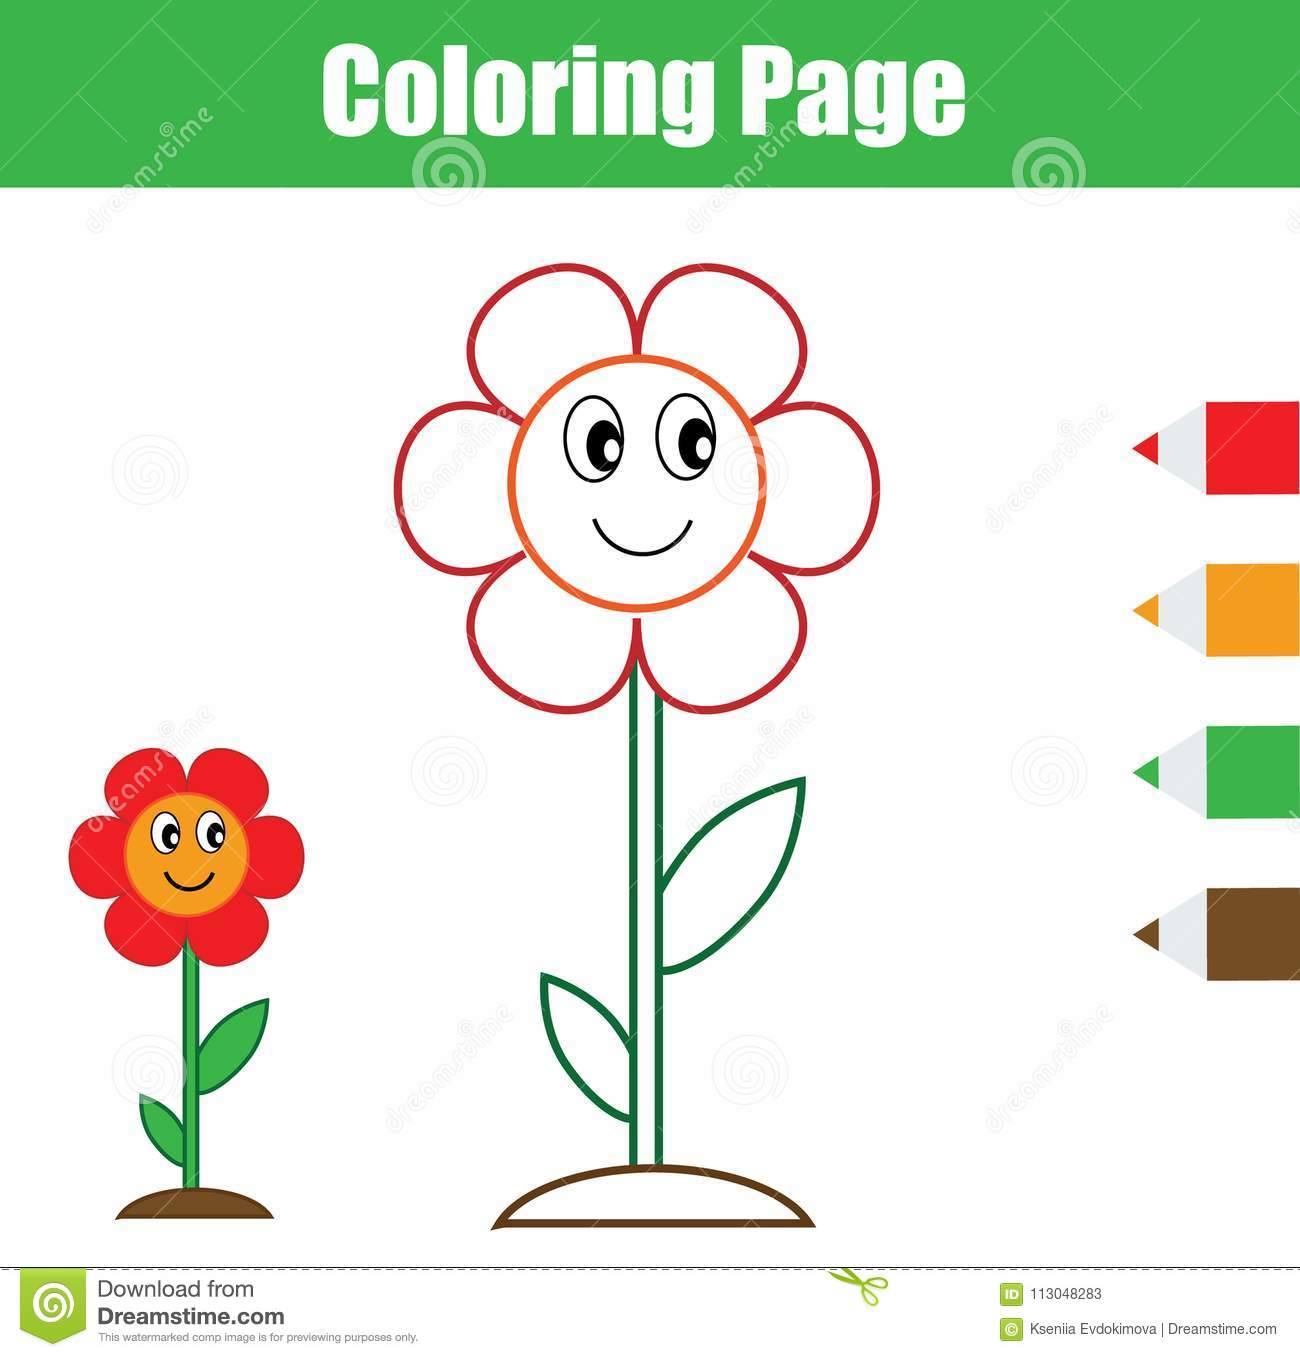 Coloring Page Educational Children Game Flower Drawing